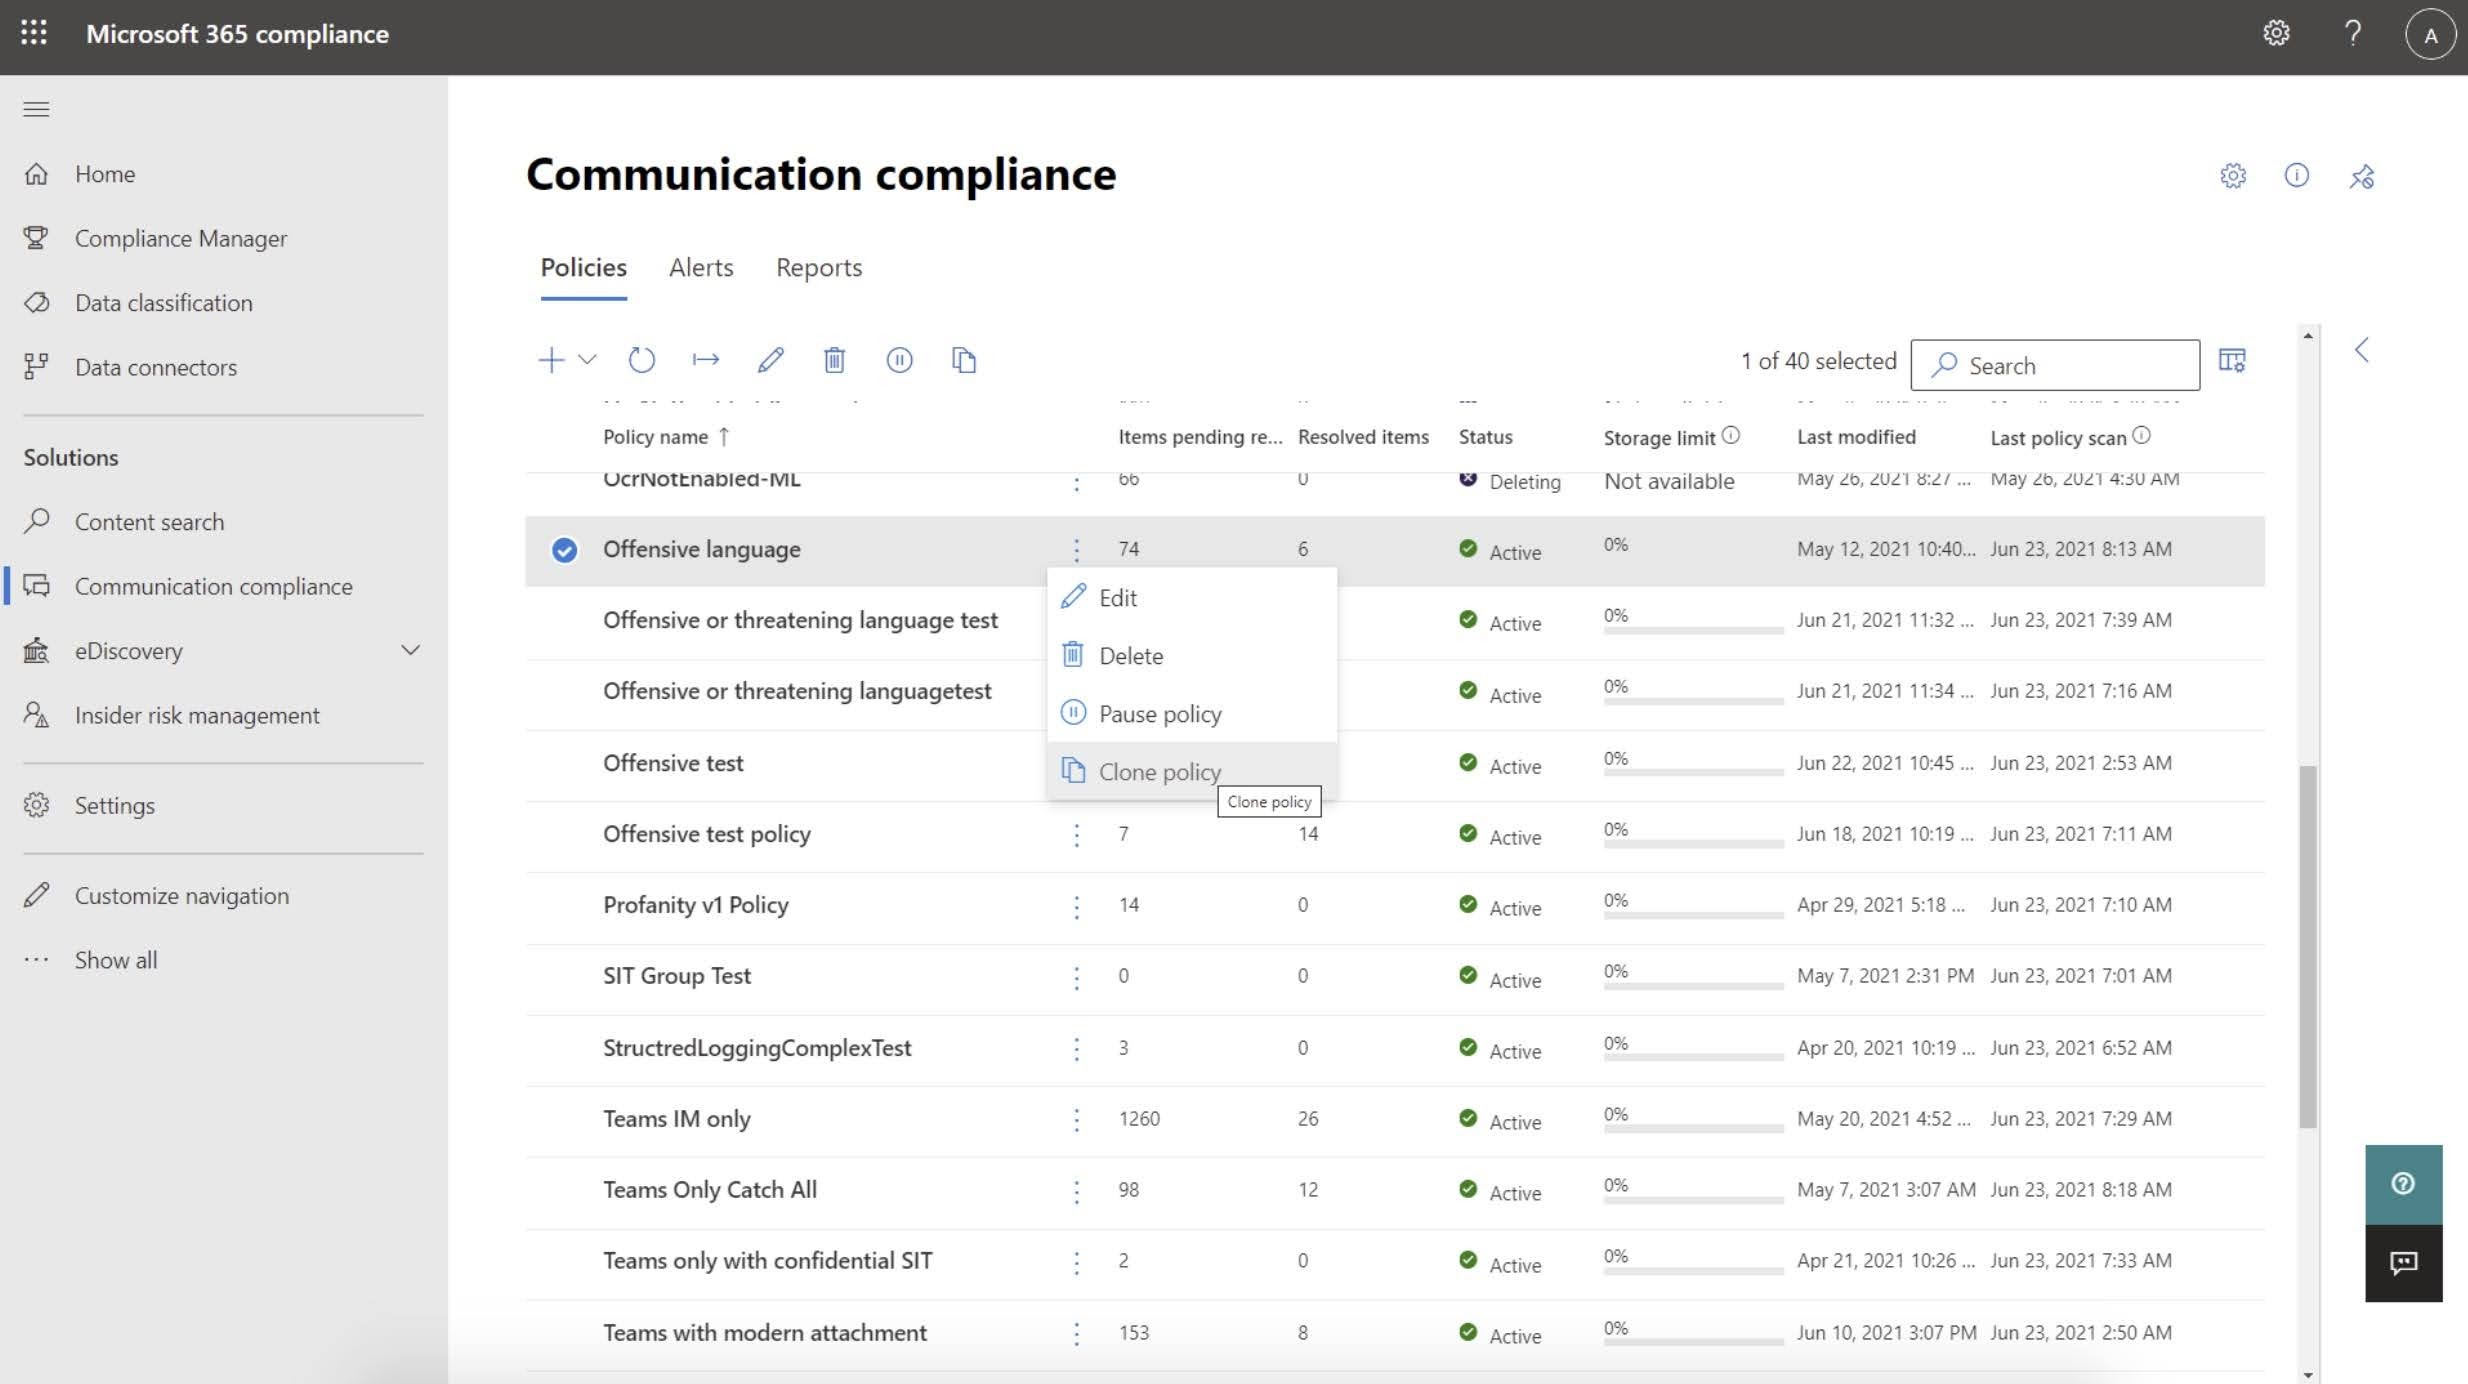 MC264662: Microsoft Compliance center: Announcing Communication Compliance policy cloning and consumption visibility